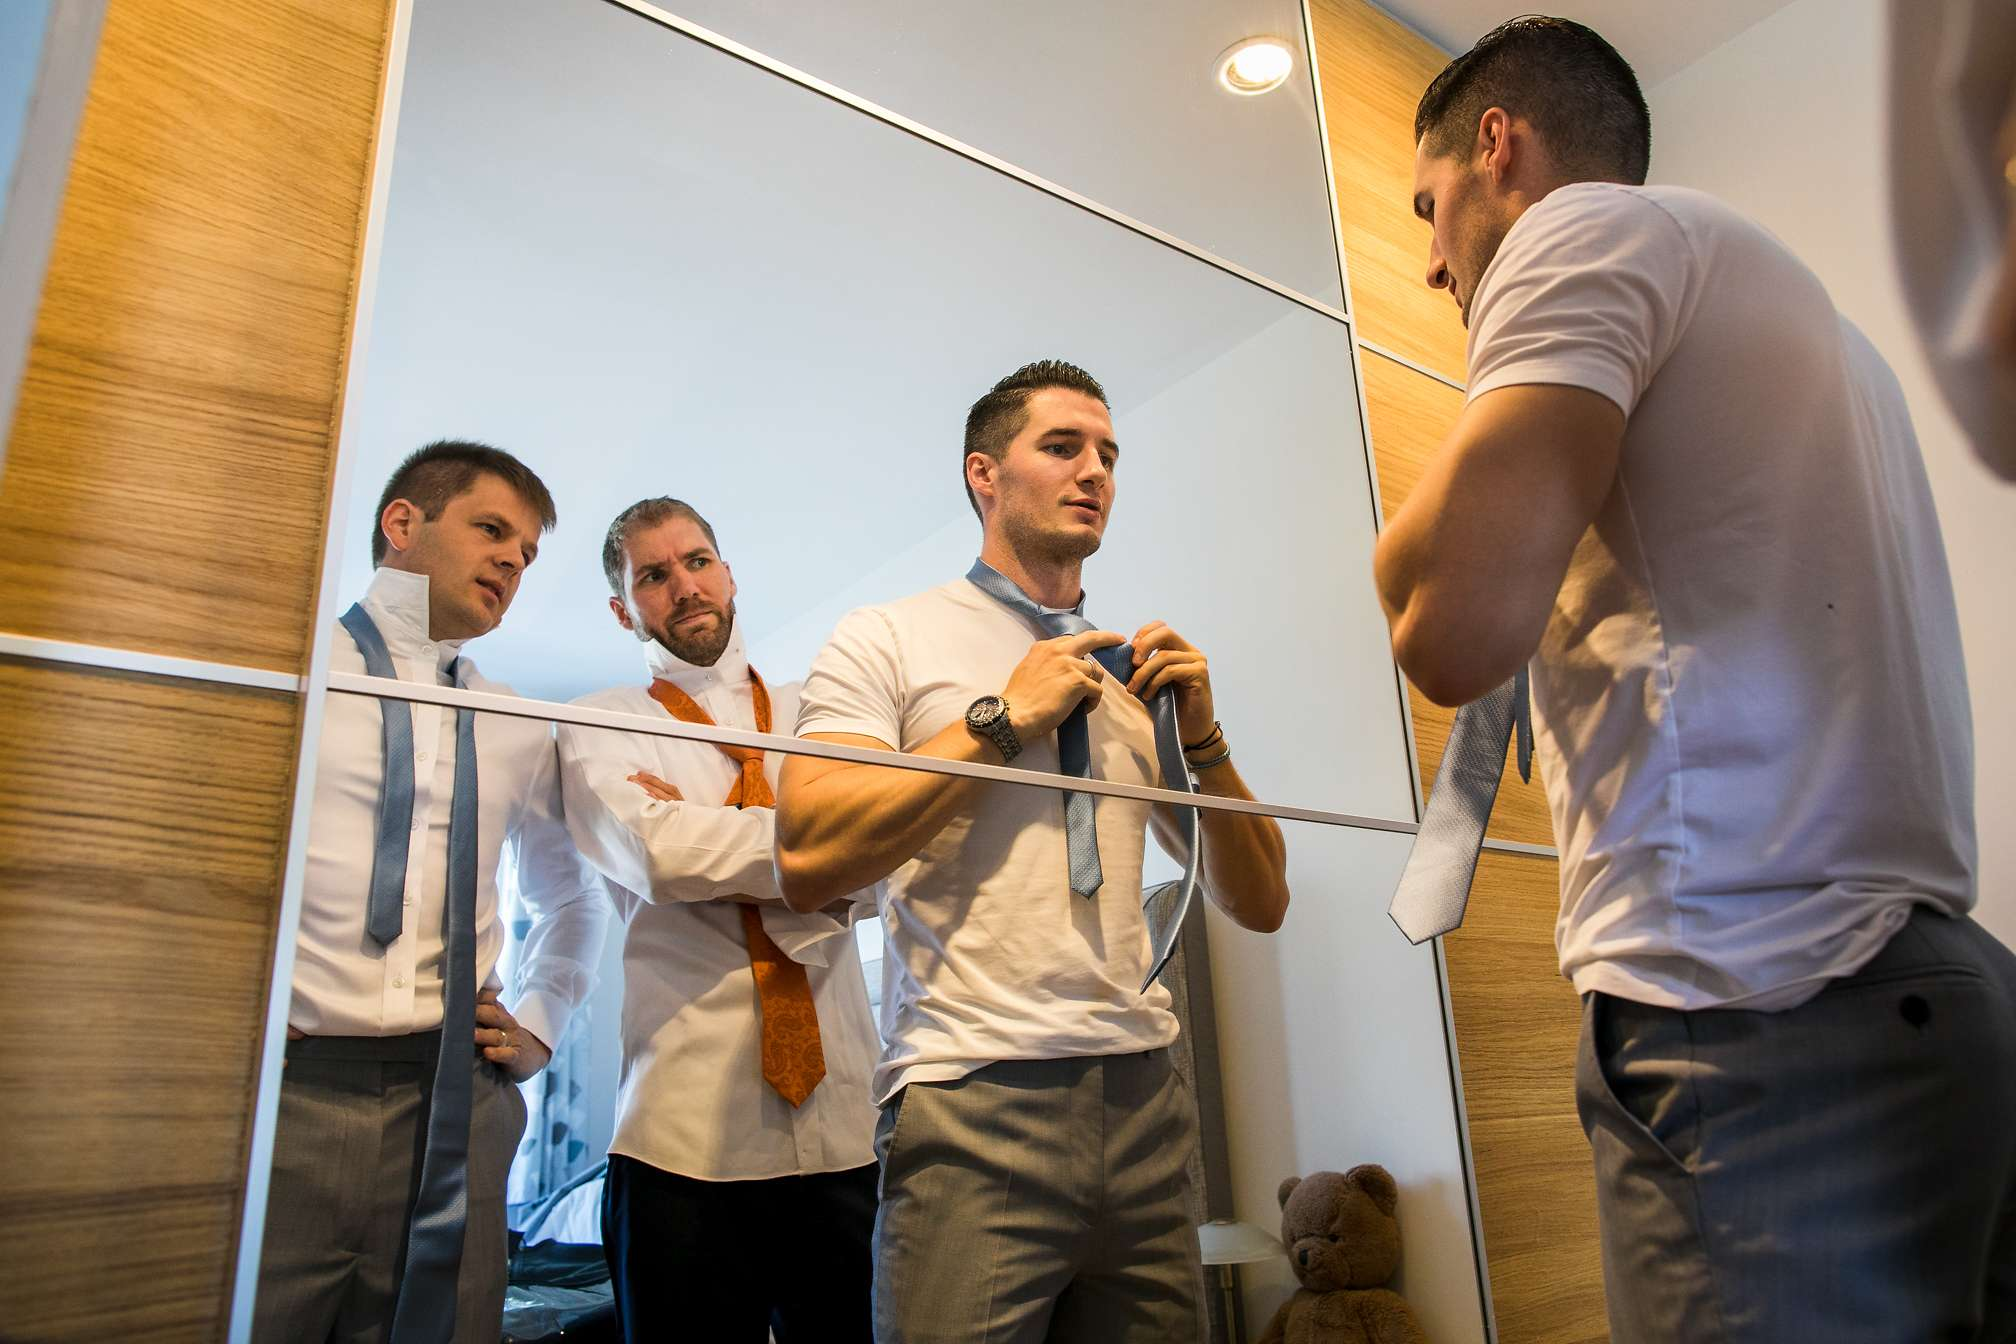 Funny tie moment during groomsmen prep